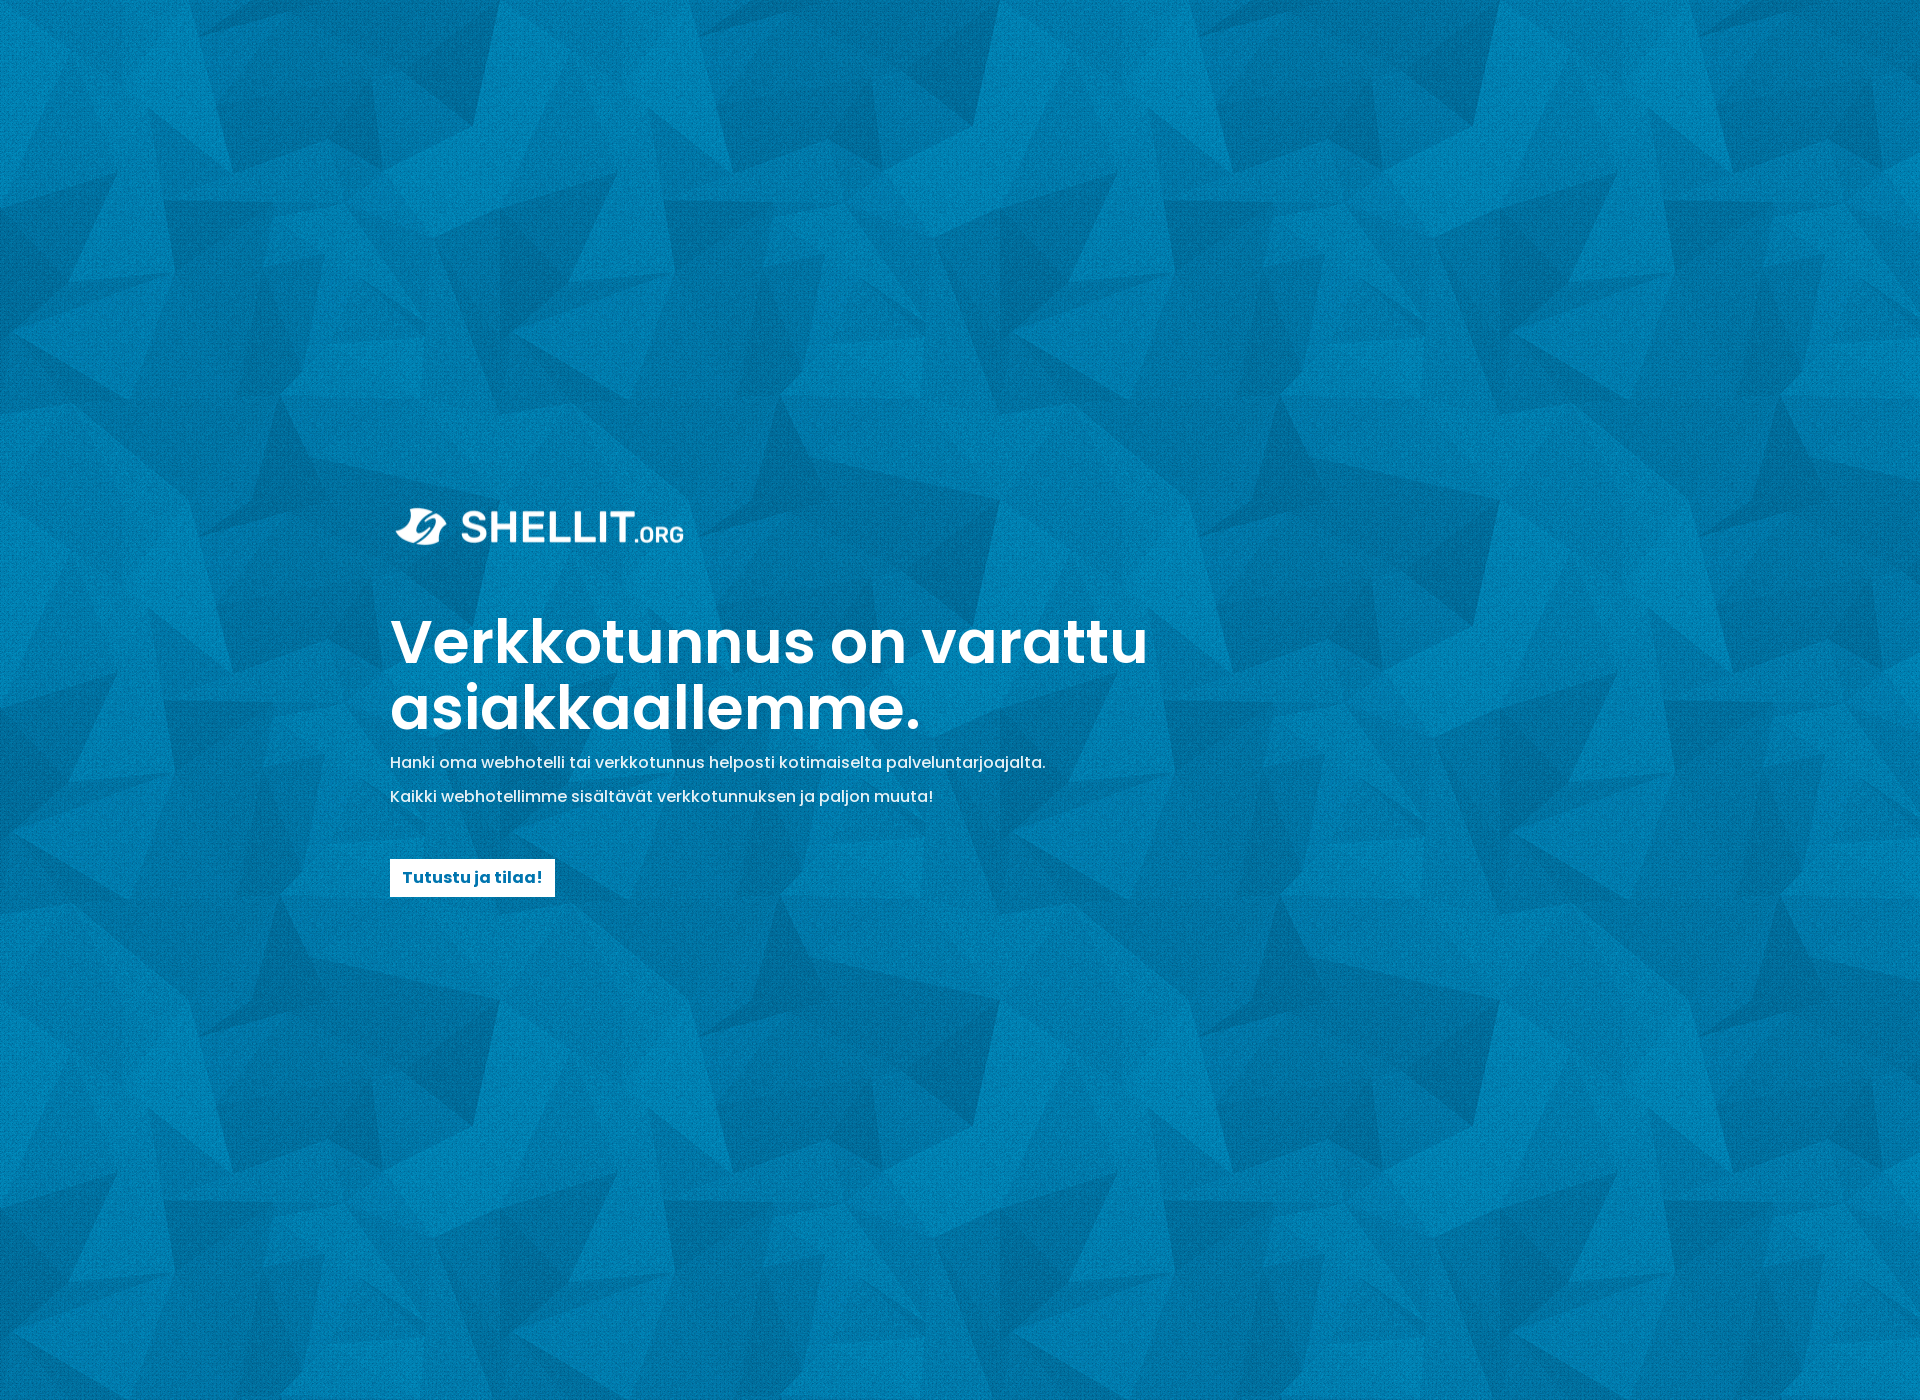 Screenshot for mediatoimistojuuri.fi